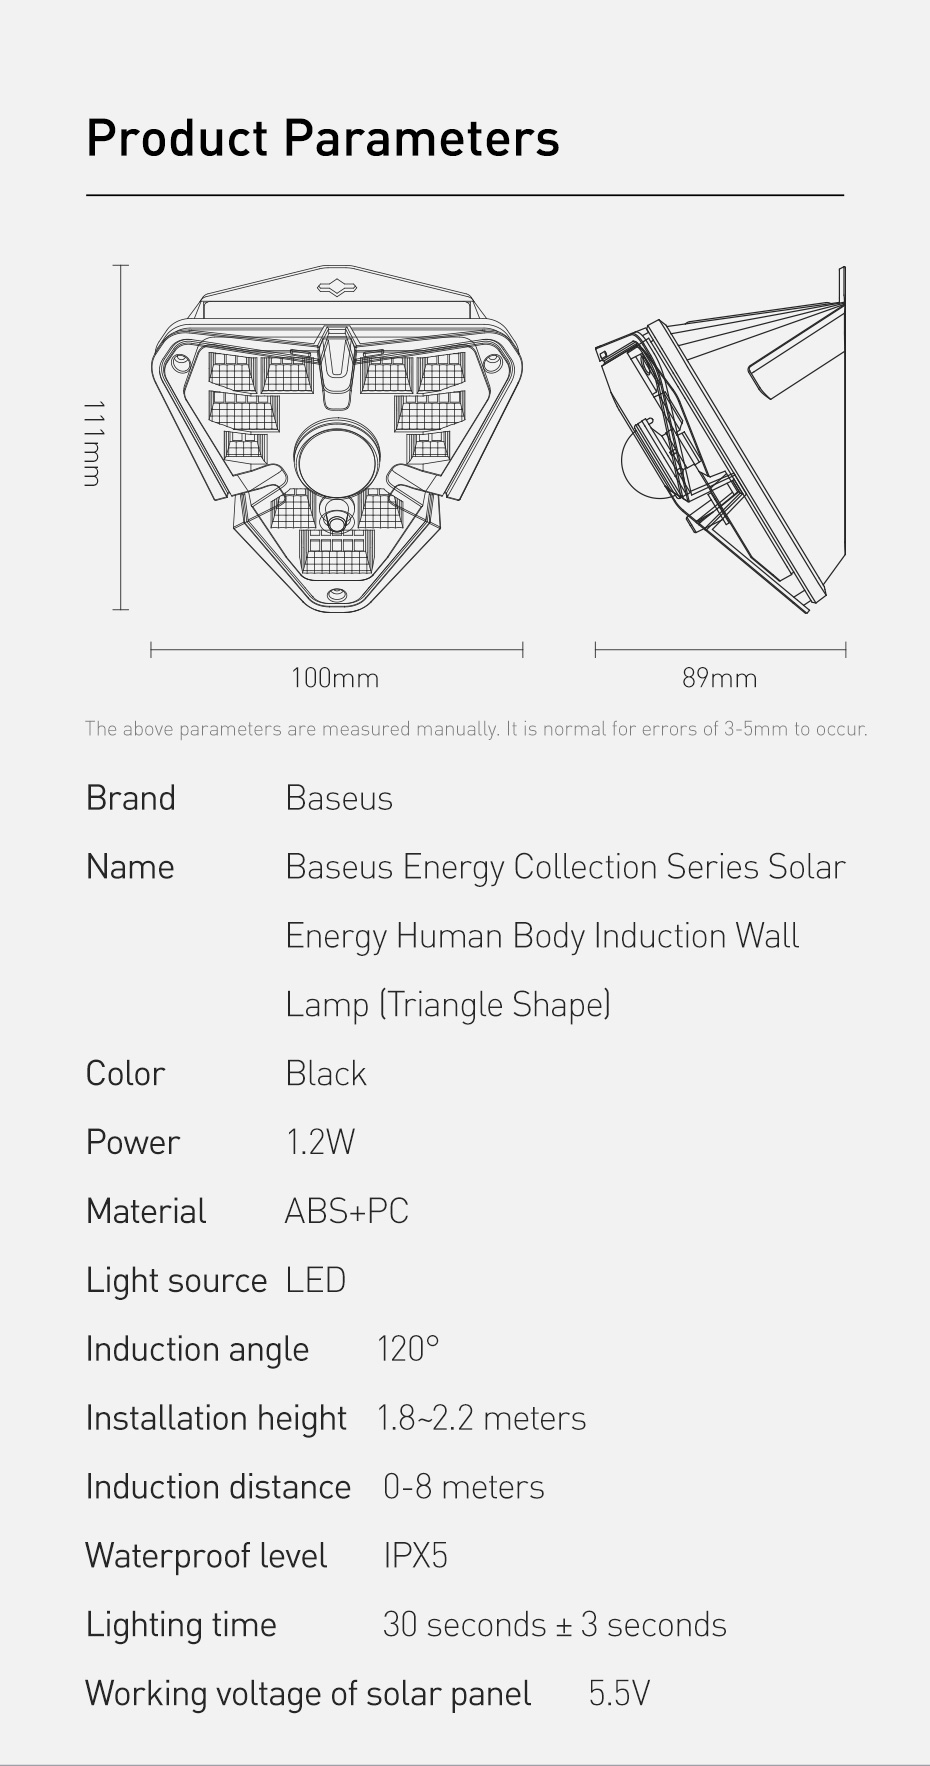 Baseus Outdoor Waterproof LED Solar Light With Motion Sensor 18 Baseus Outdoor Waterproof LED Solar Light With Motion Sensor Love Me Some Gadgets